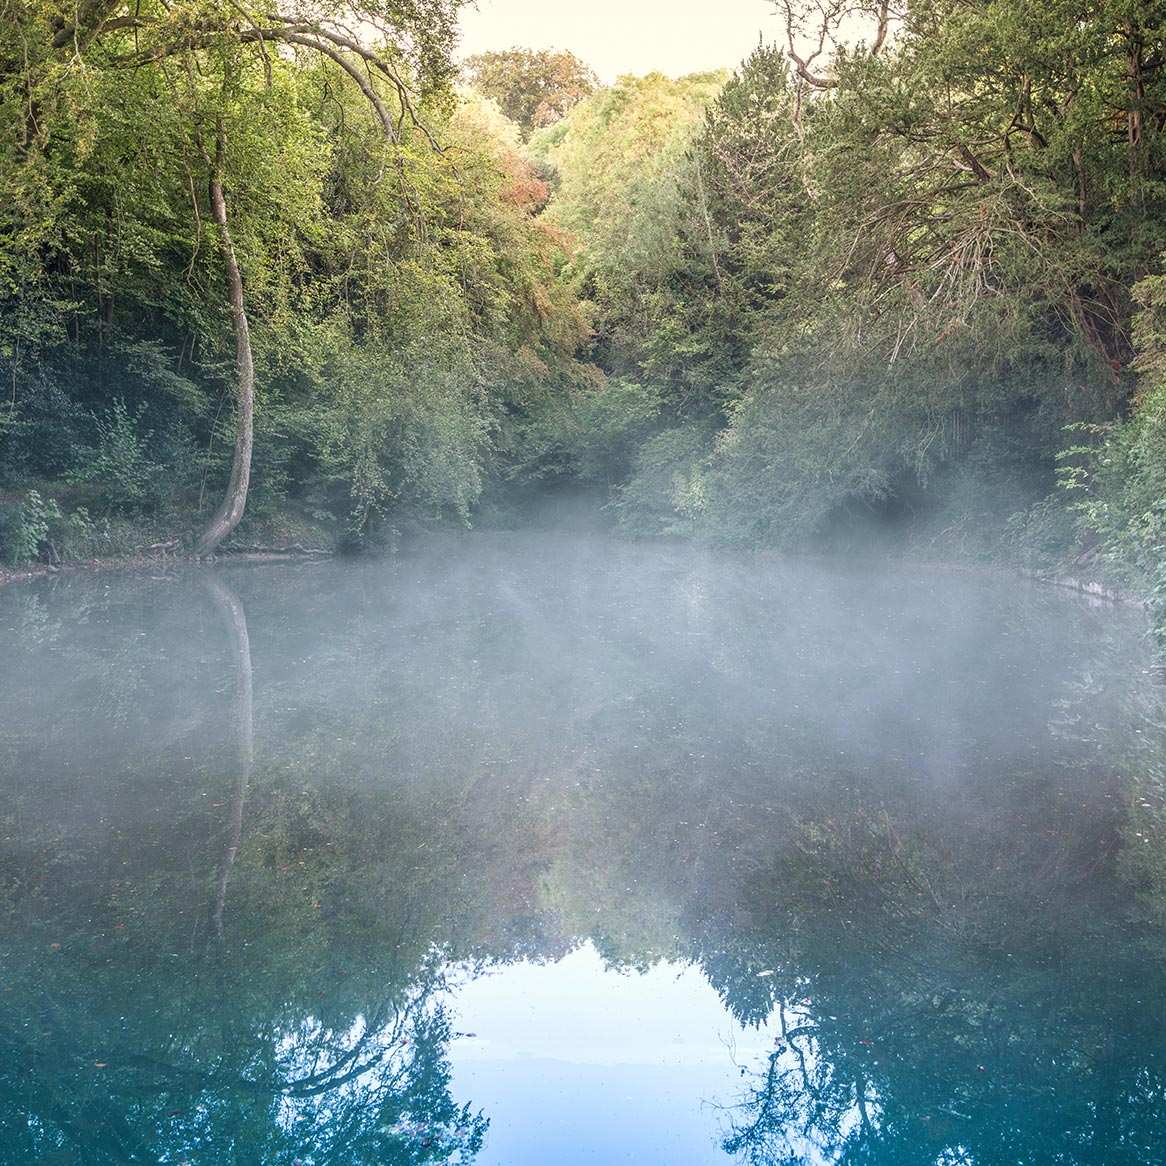 The fog over the pool at Silent Pool